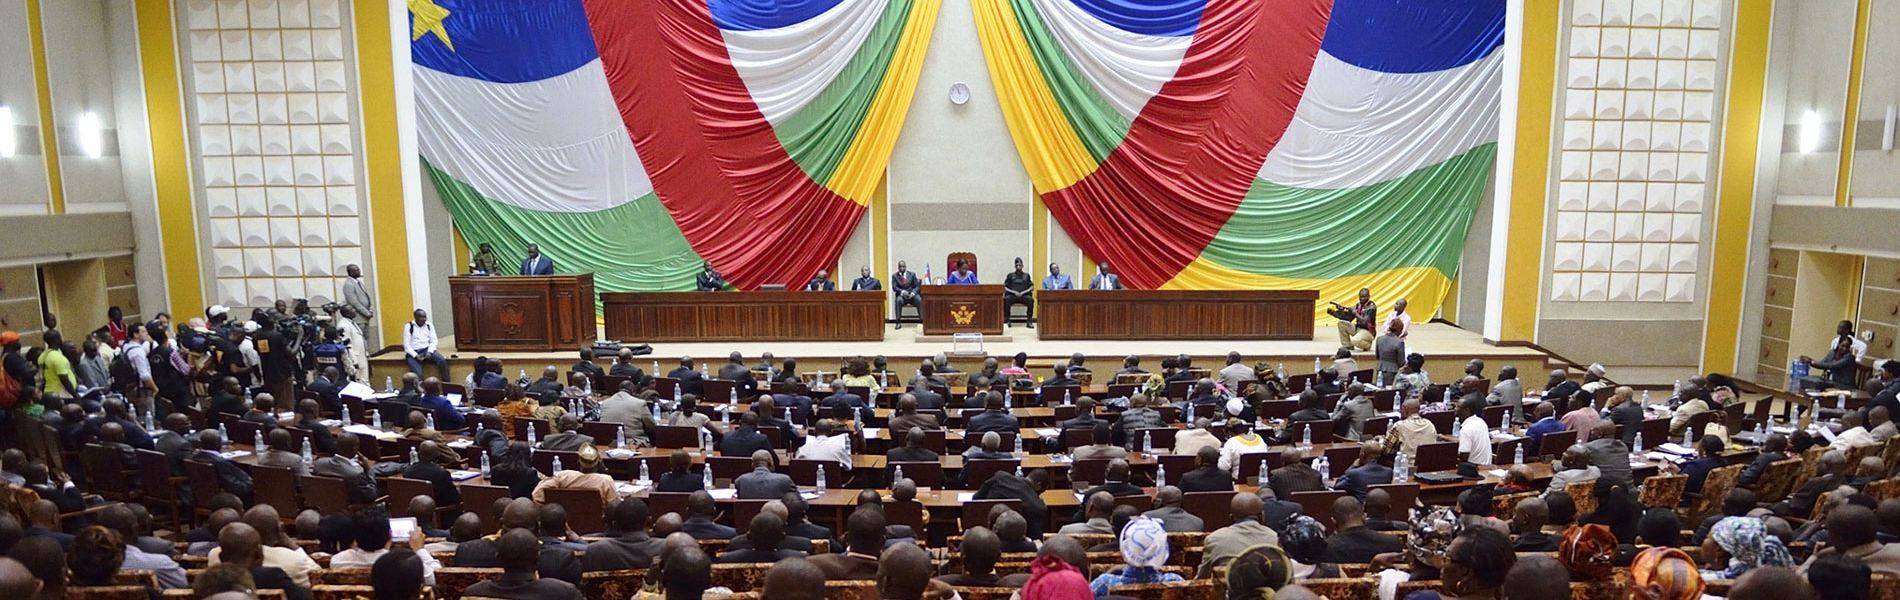 Assemblée nationale centrafricaine - budget 2020